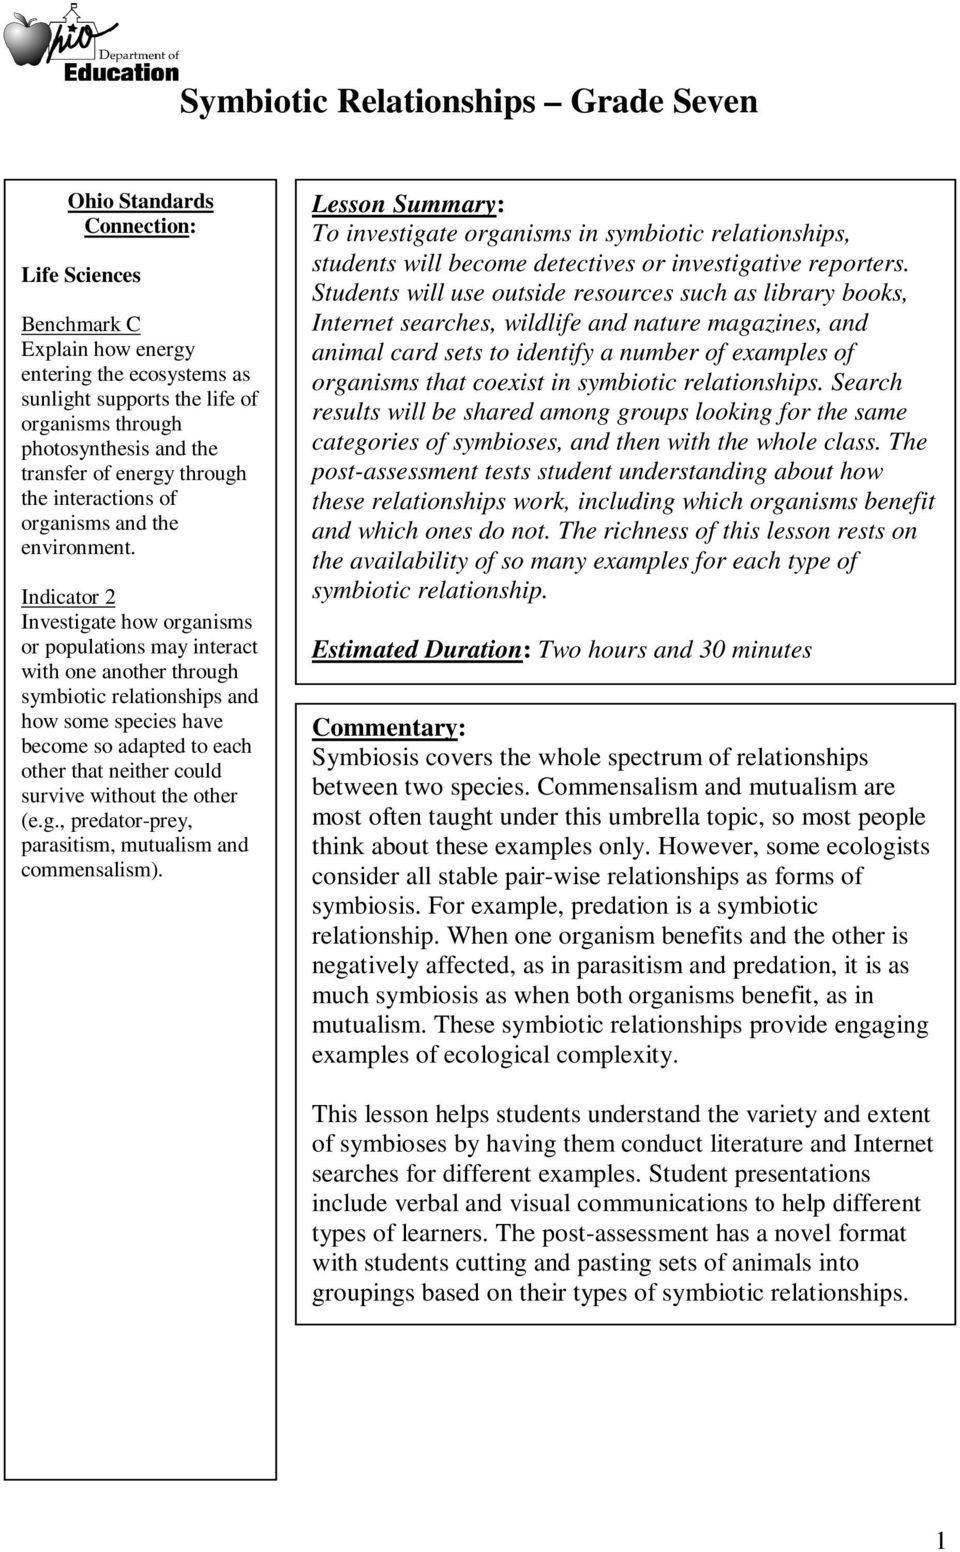 Symbiotic Relationships Worksheet Answers Symbiotic Relationships Grade Seven Pdf Free Download